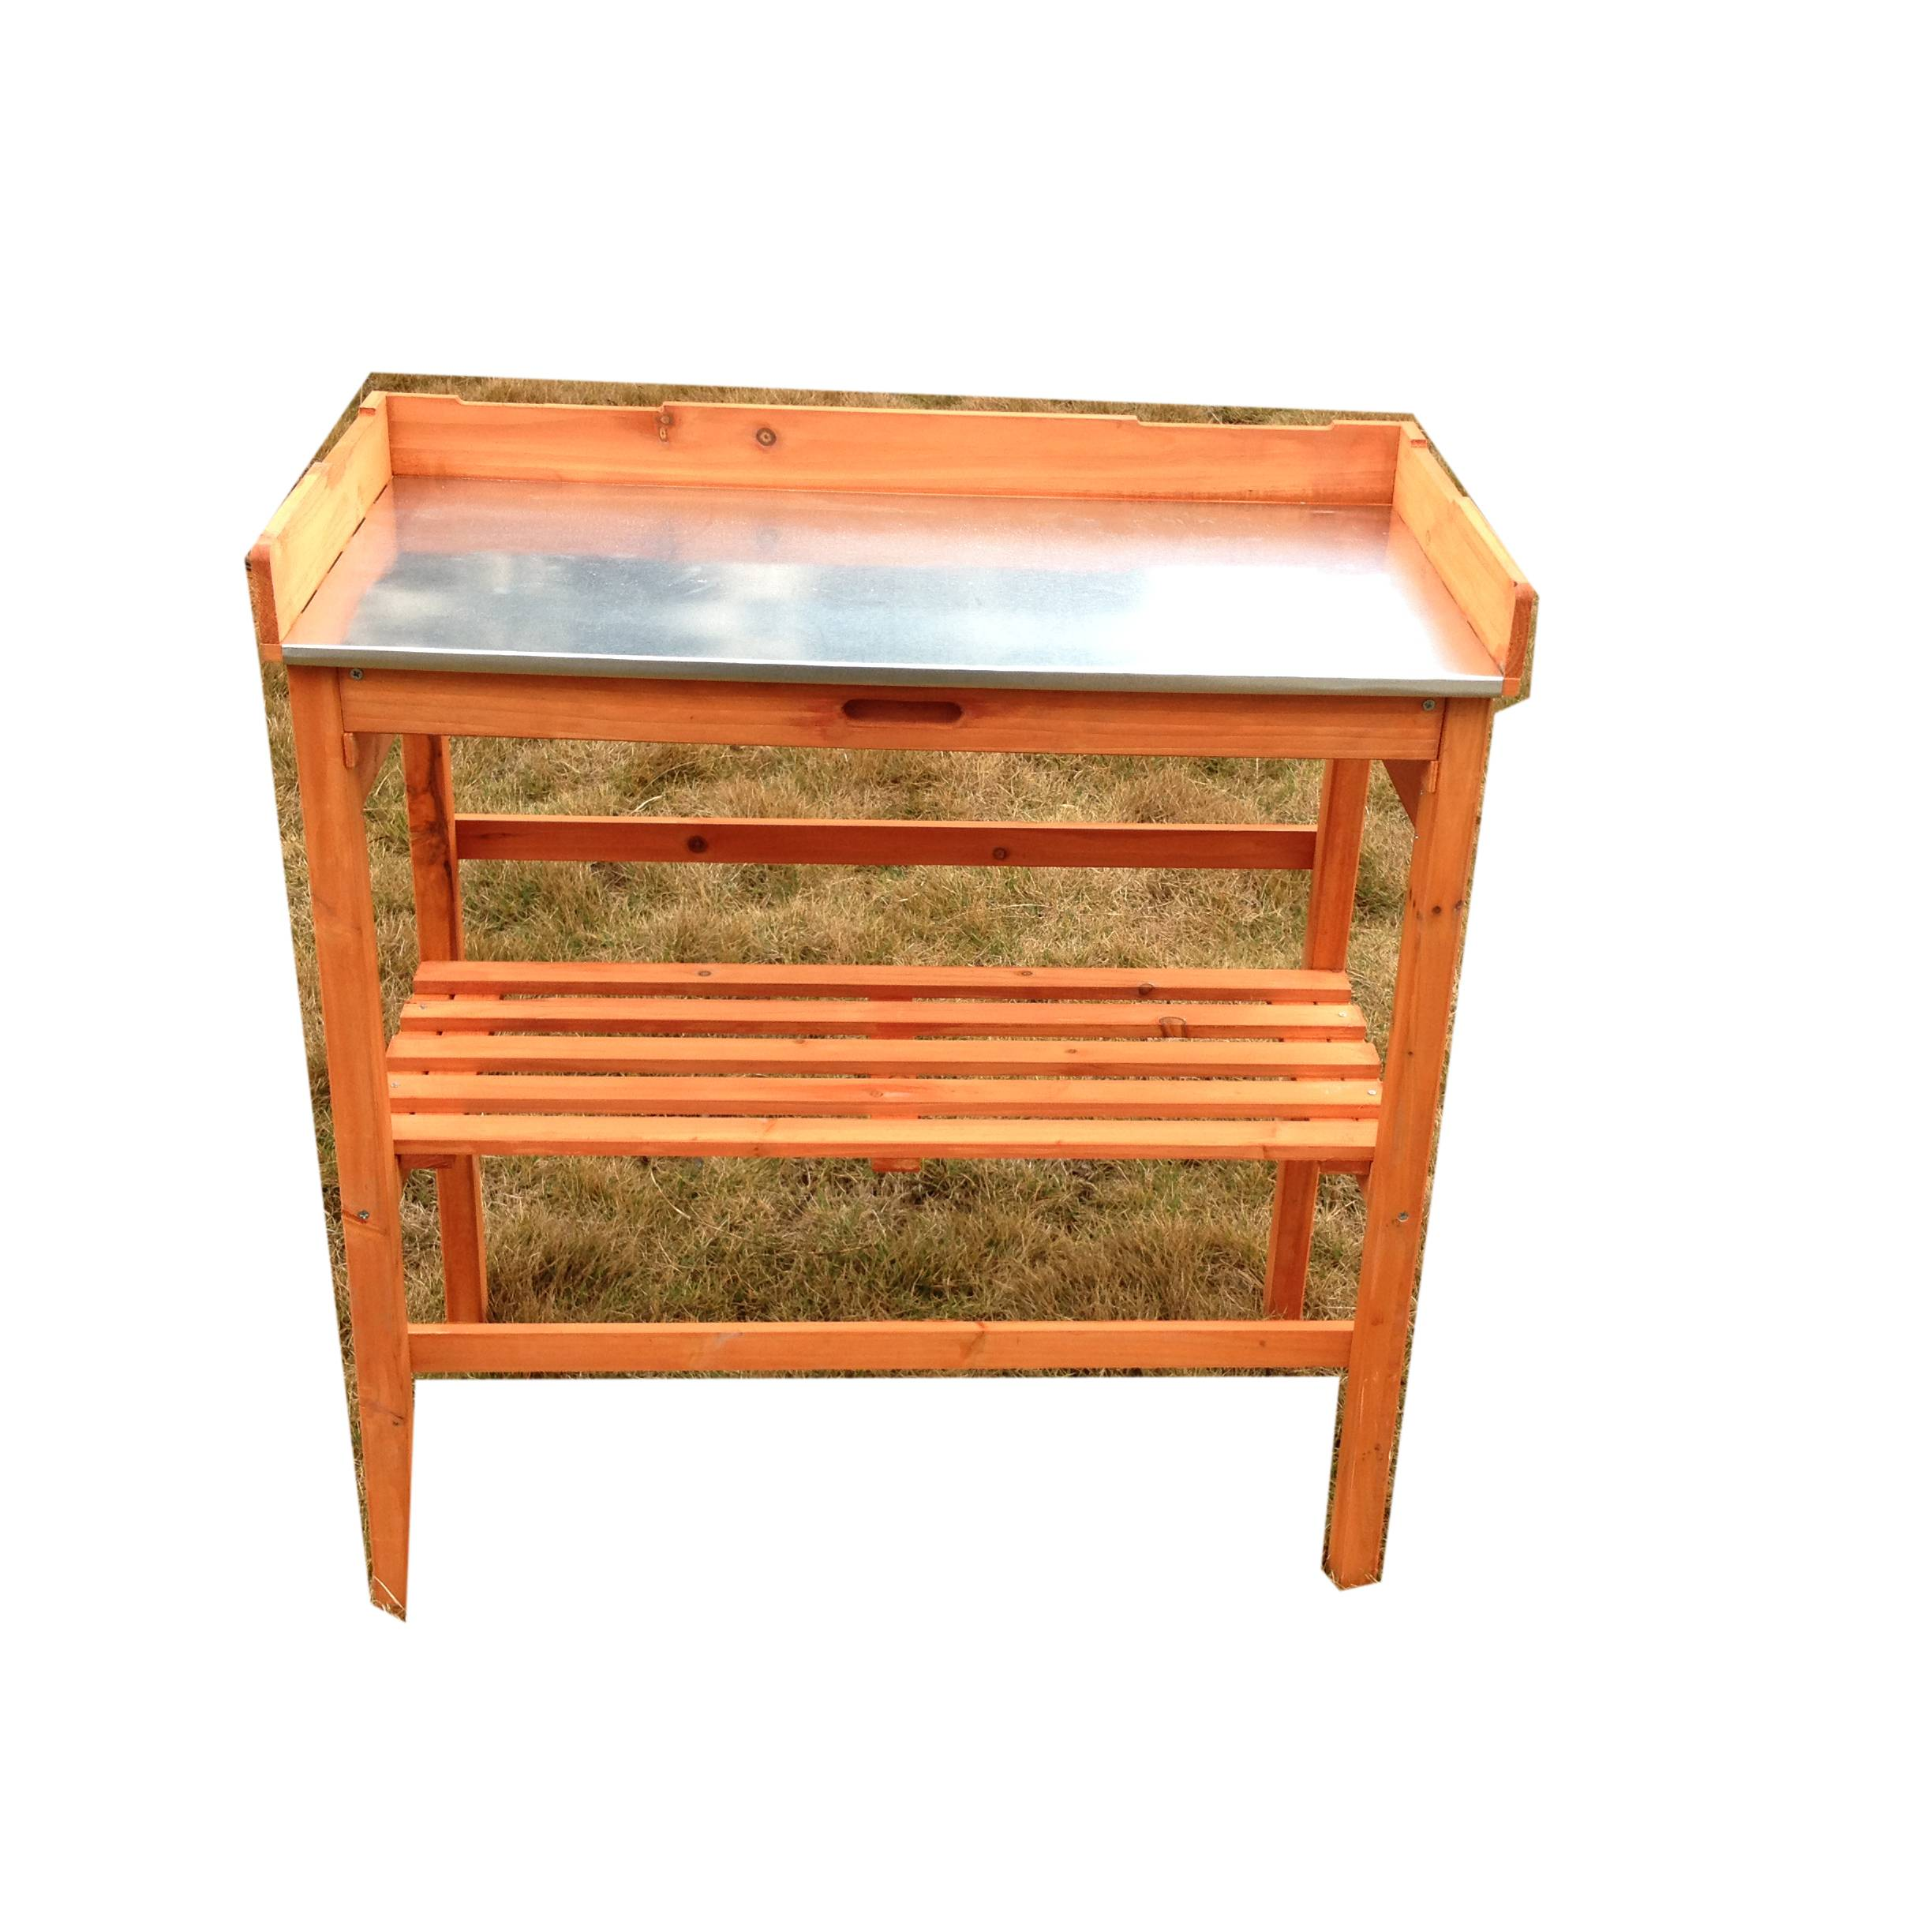 China Work Bench Tabletop Cabinet Drawer Open Shelf Wood Outdoor Garden Potting Bench Plant Table Manufacturer And Supplier Easy